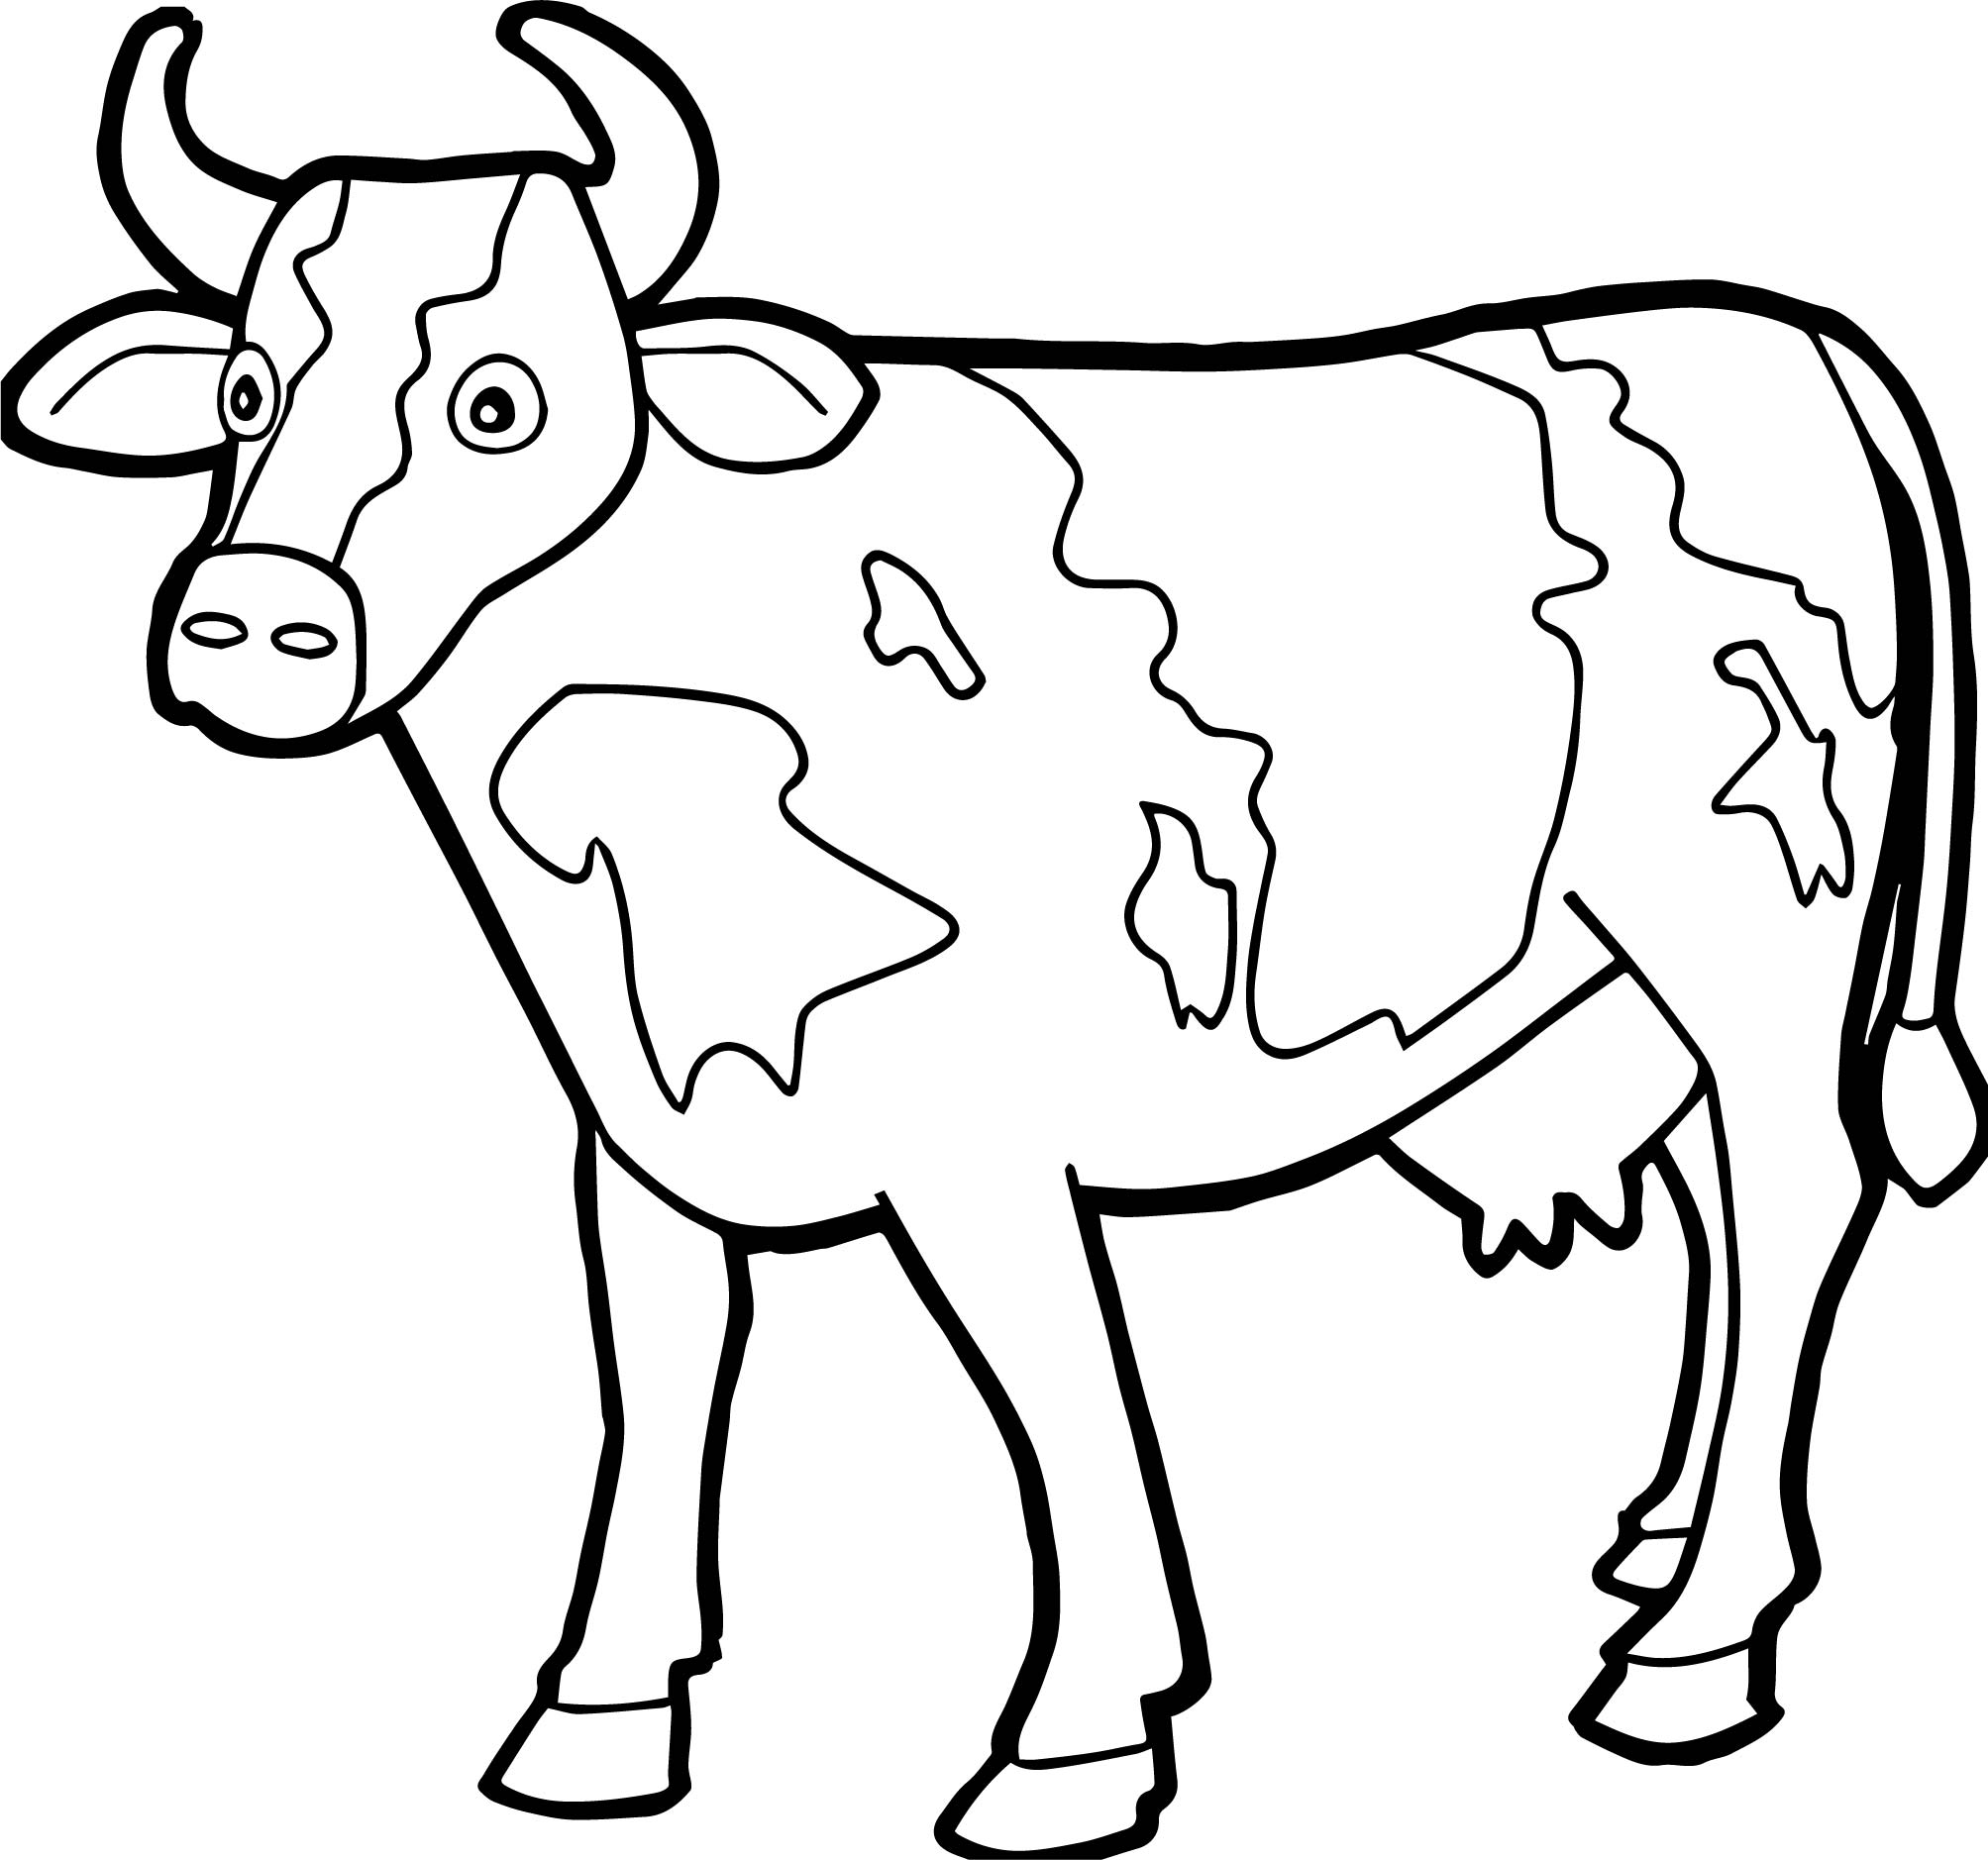 coloring page cow cute cow animal coloring books for kids drawing cow page coloring